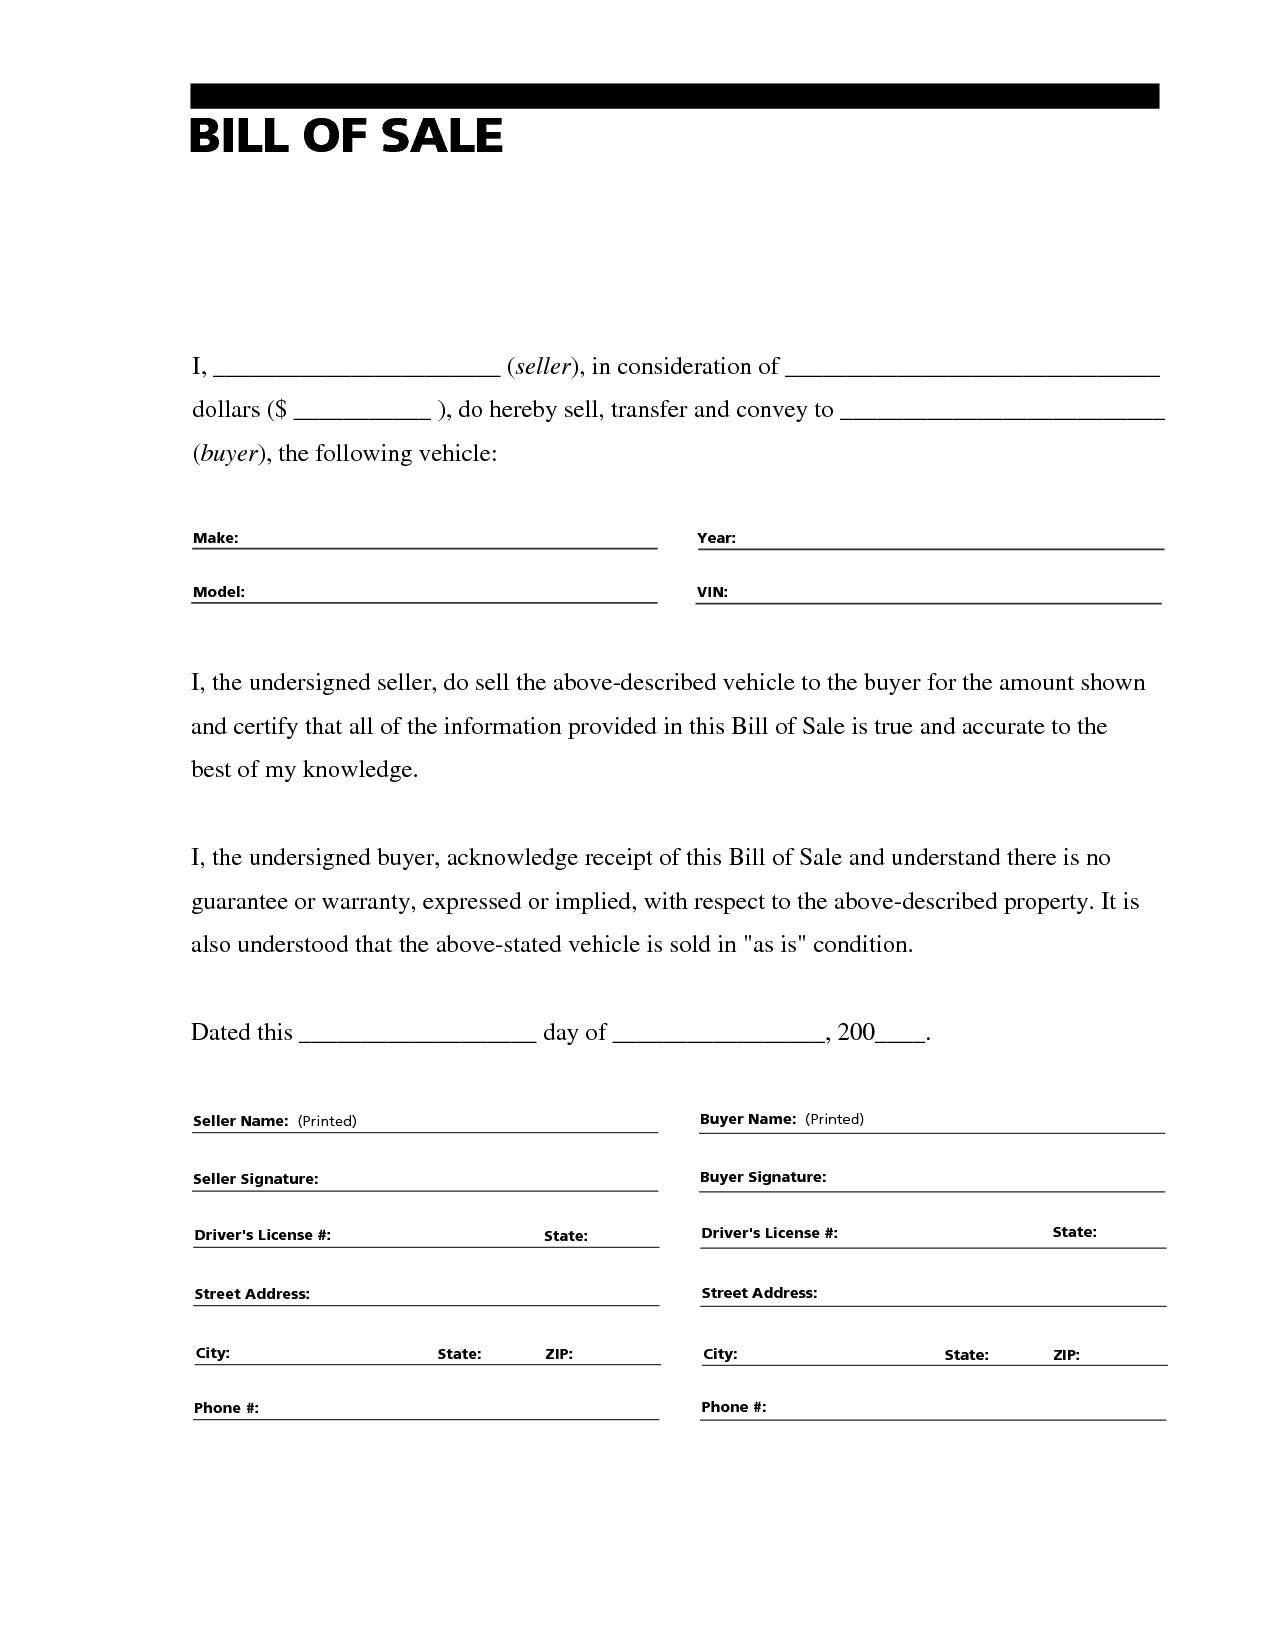 Free Printable Last Will And Testament Blank Forms Florida | Mbm Legal - Free Printable Will Forms